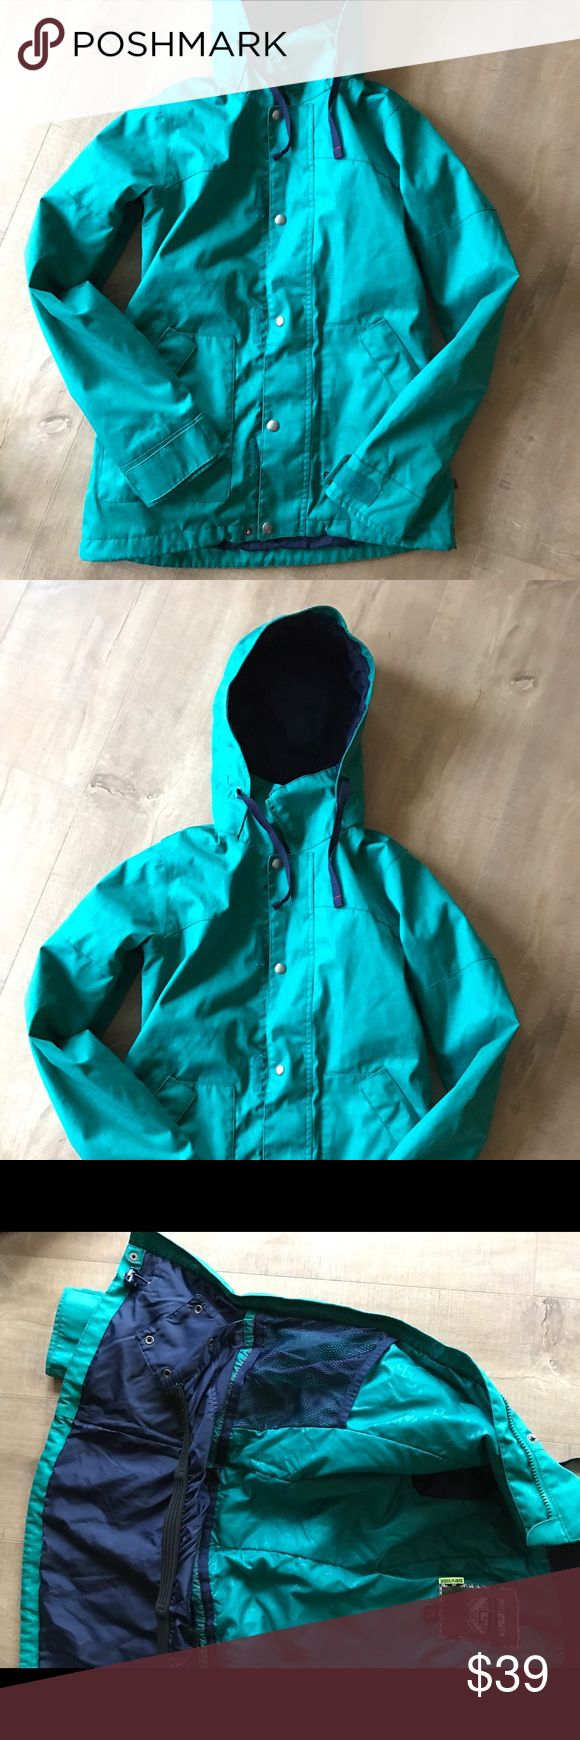 WOMEN'S BLUE/GREEN SKI/SNOW BURTON JACKET Burton Dry Ride. VERY warm. A gorgeous teal color with navy blue interior. Inner pocket, elastic waist and wrists. In GREAT condition, sad to sell but no longer fits me. Smoker-free home :) Burton Jackets & Coats